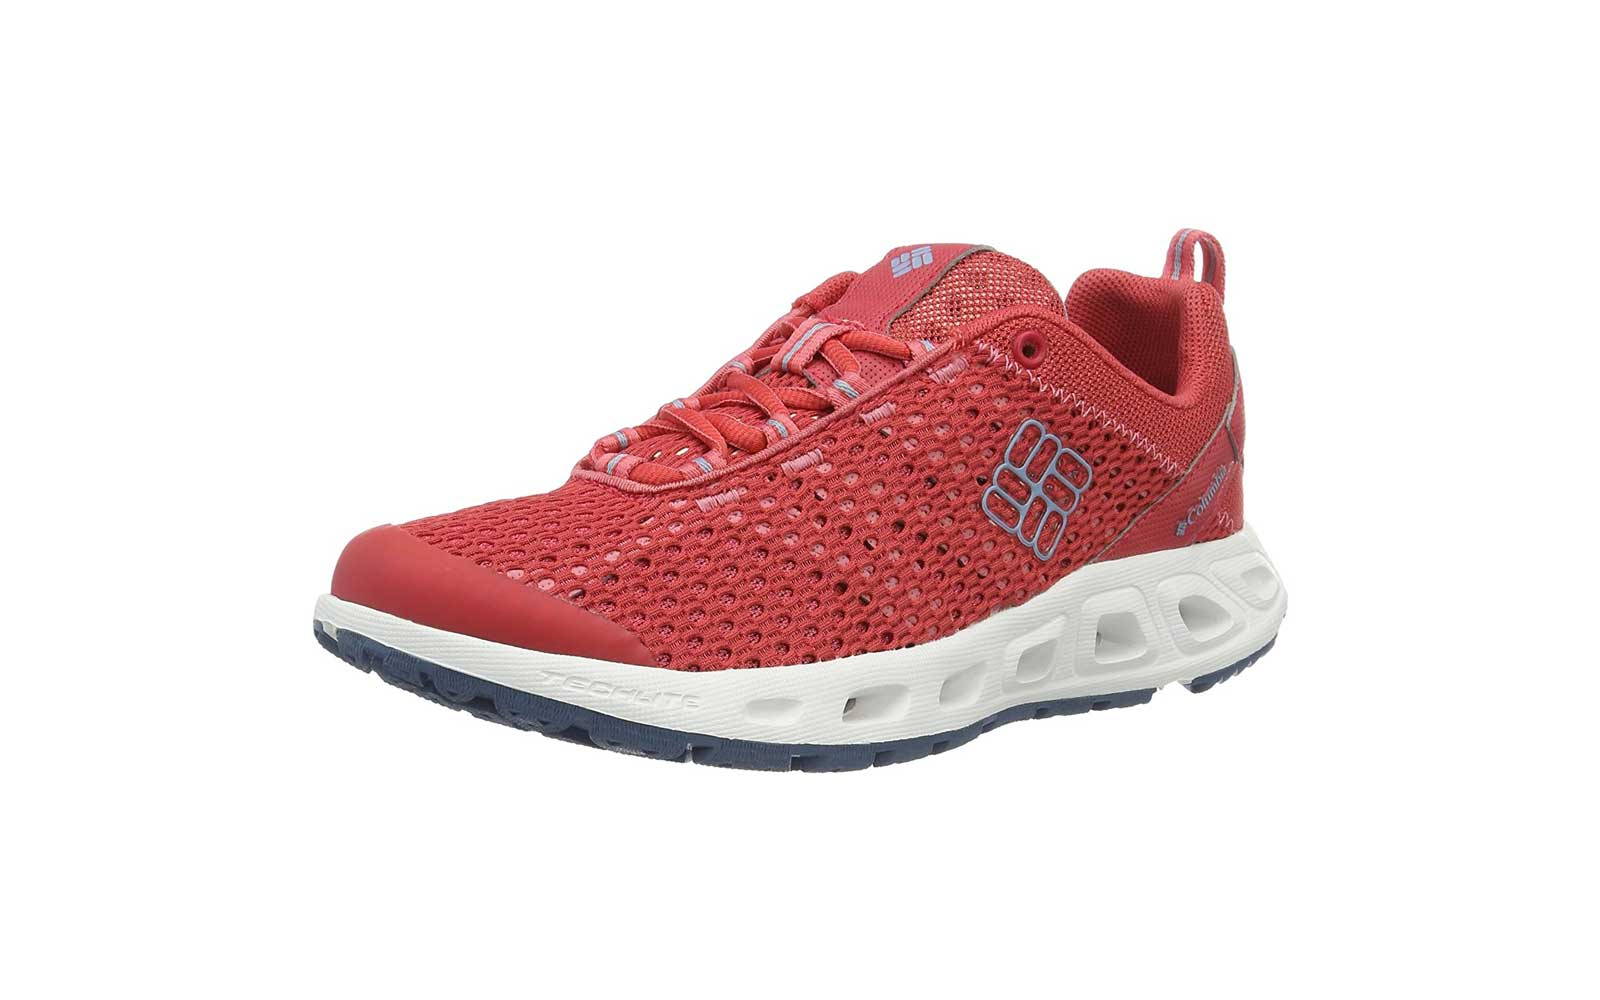 5ff14606a7db The Best Water Shoes for Women in 2019